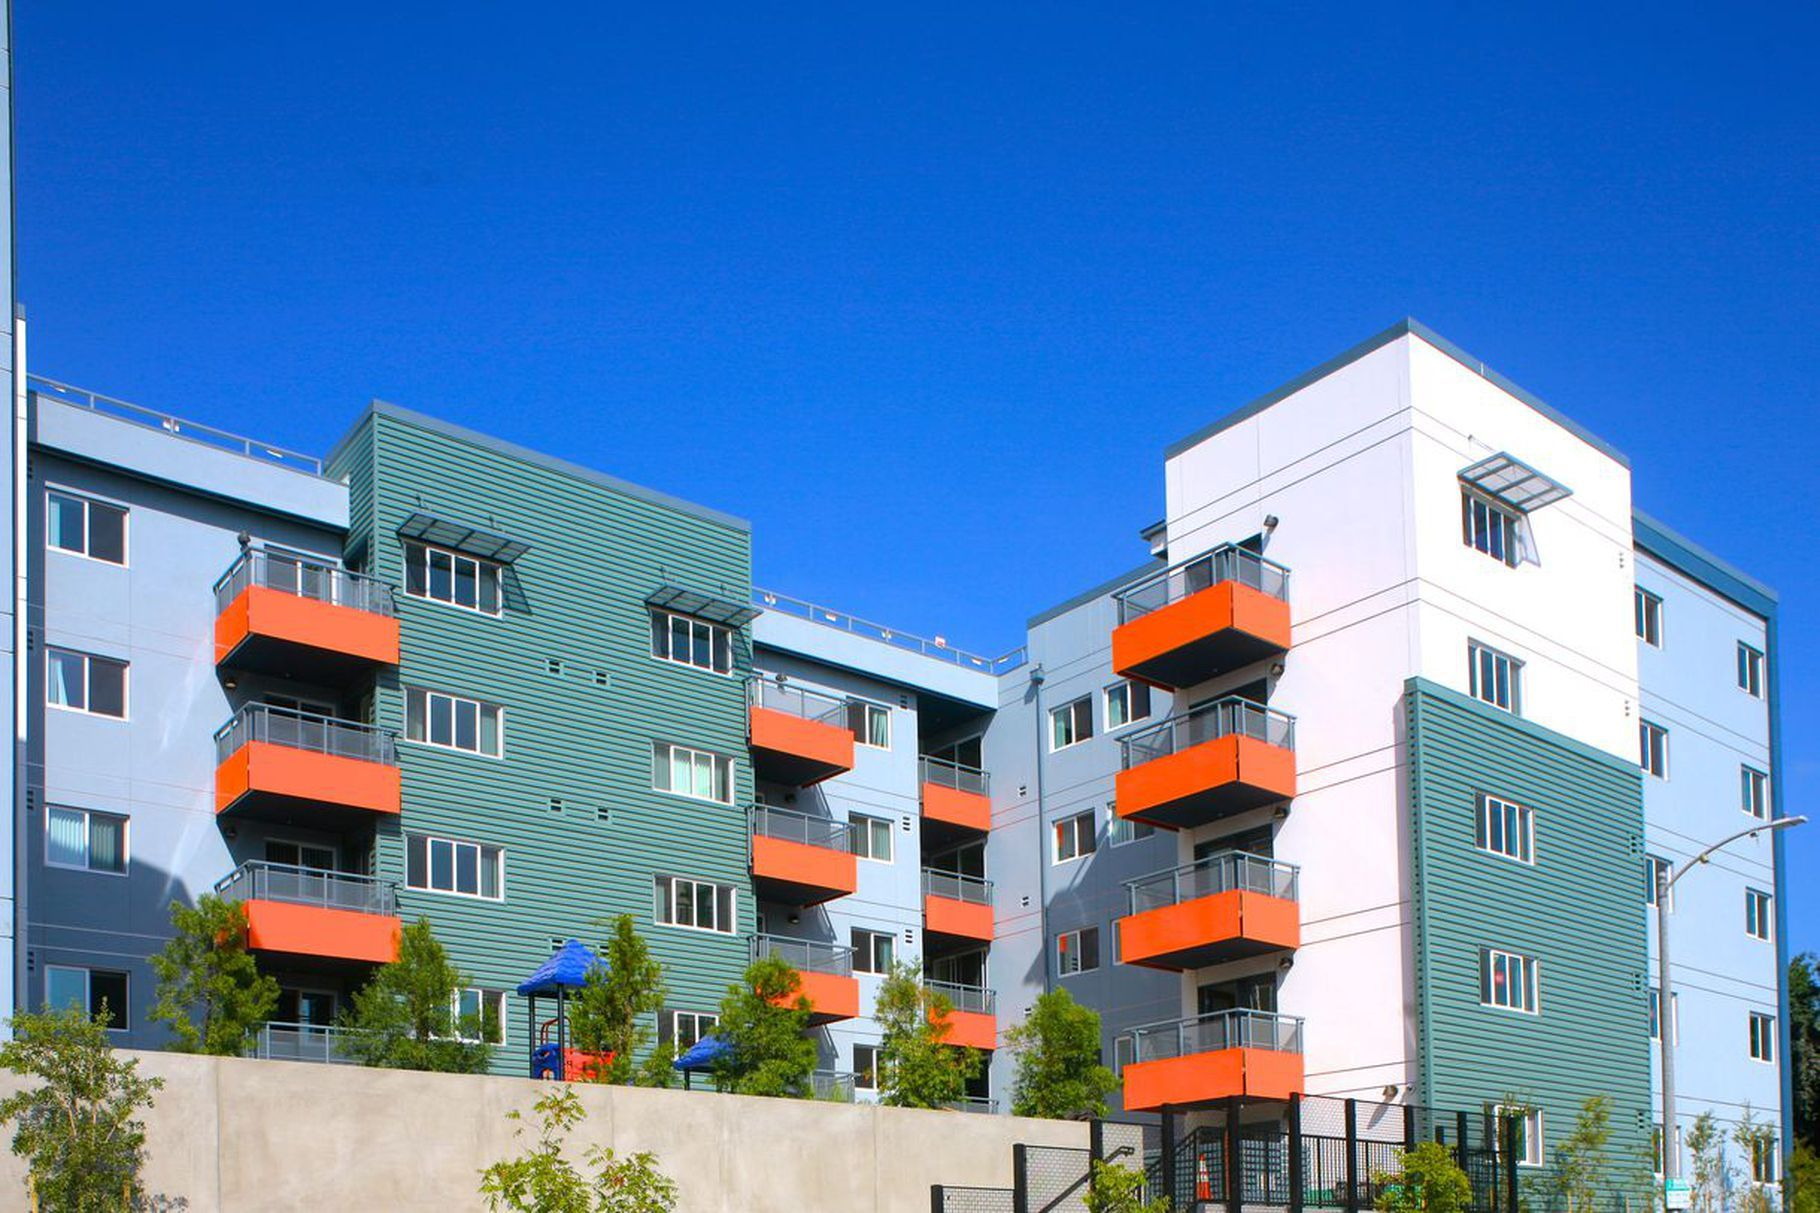 Can a federal tax credit help rentburdened Americans